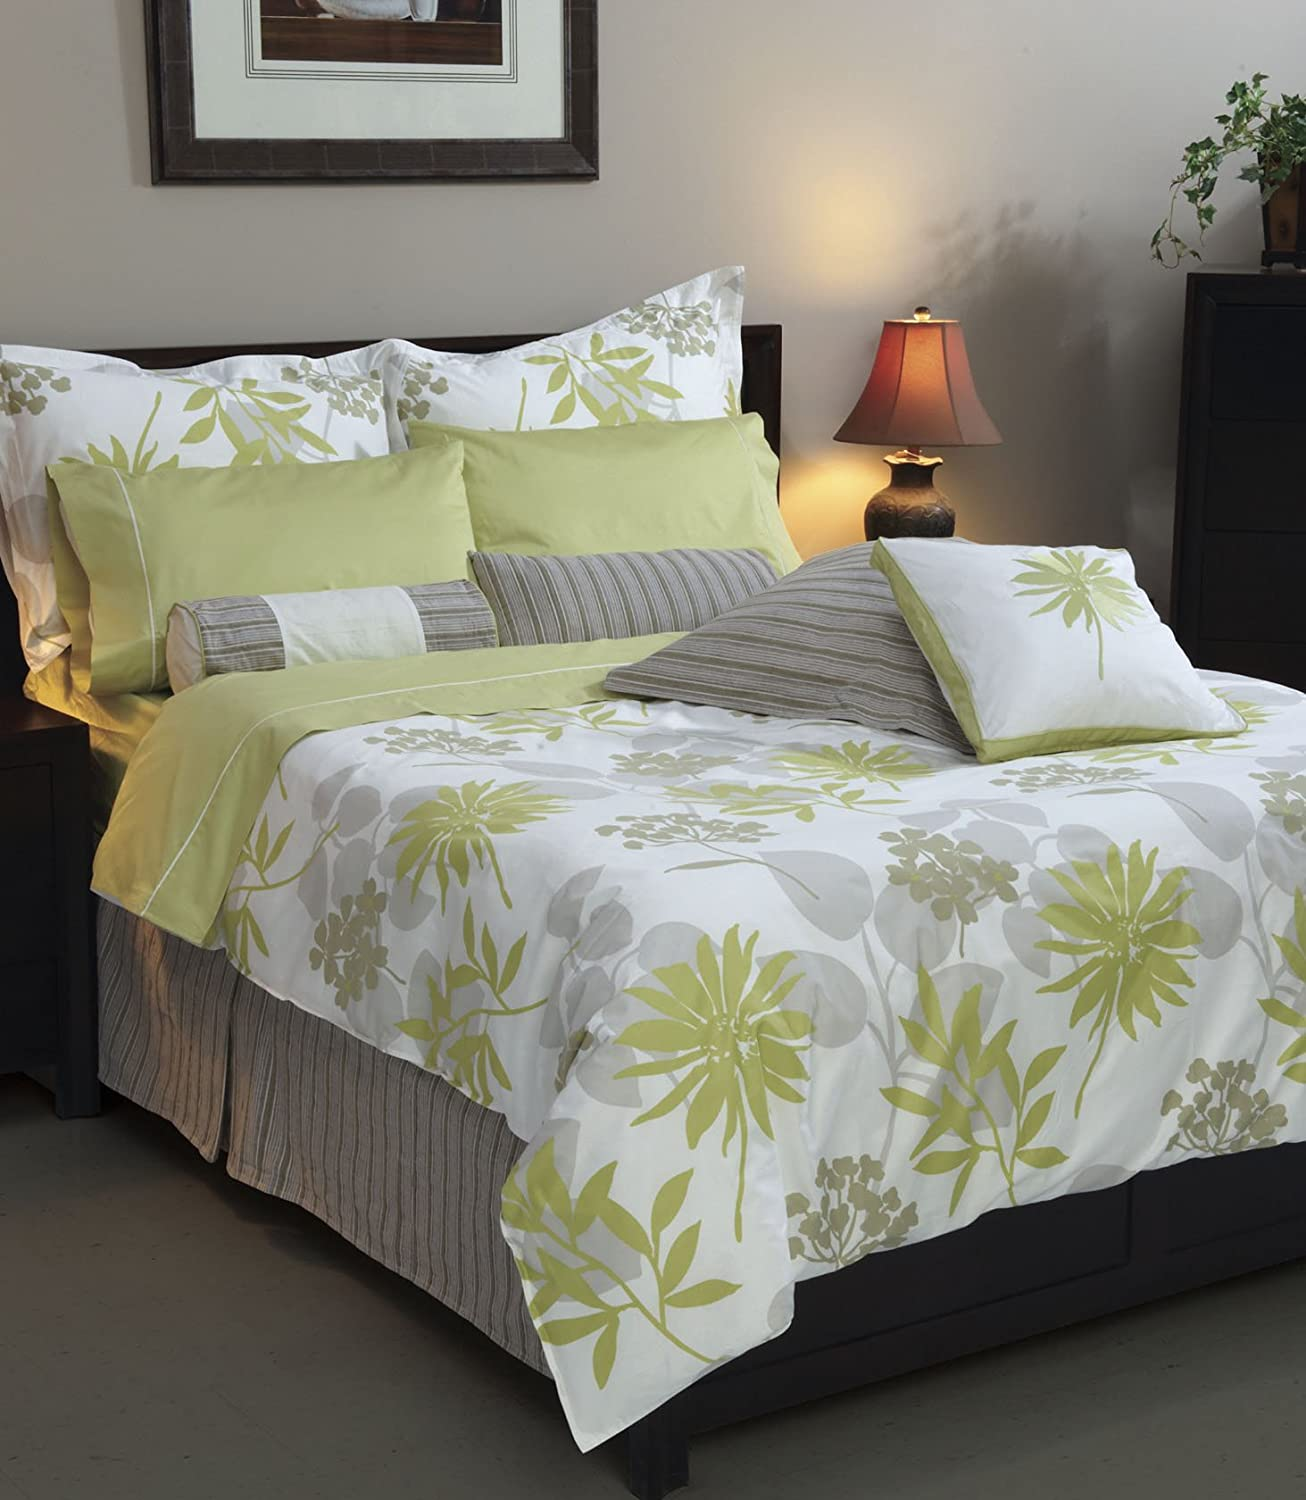 cover beyond bedroom bed christy evelyn and green pin apartment king decor from duvet bath sage